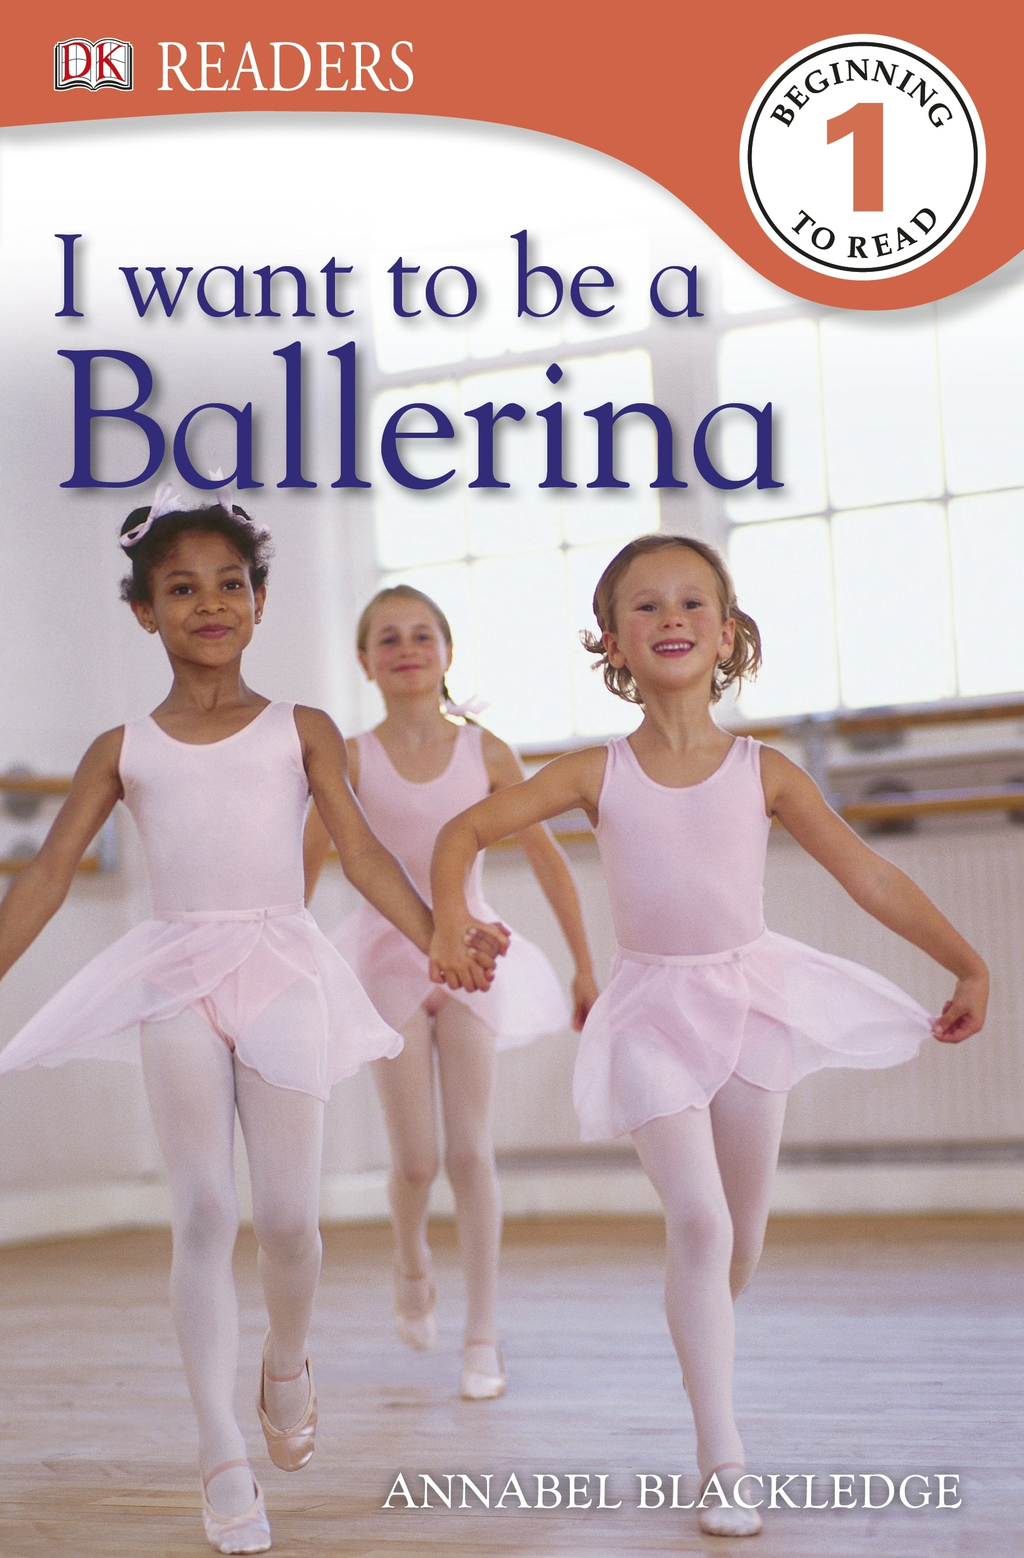 DK Readers: I Want to Be a Ballerina By: Annabel Blackledge